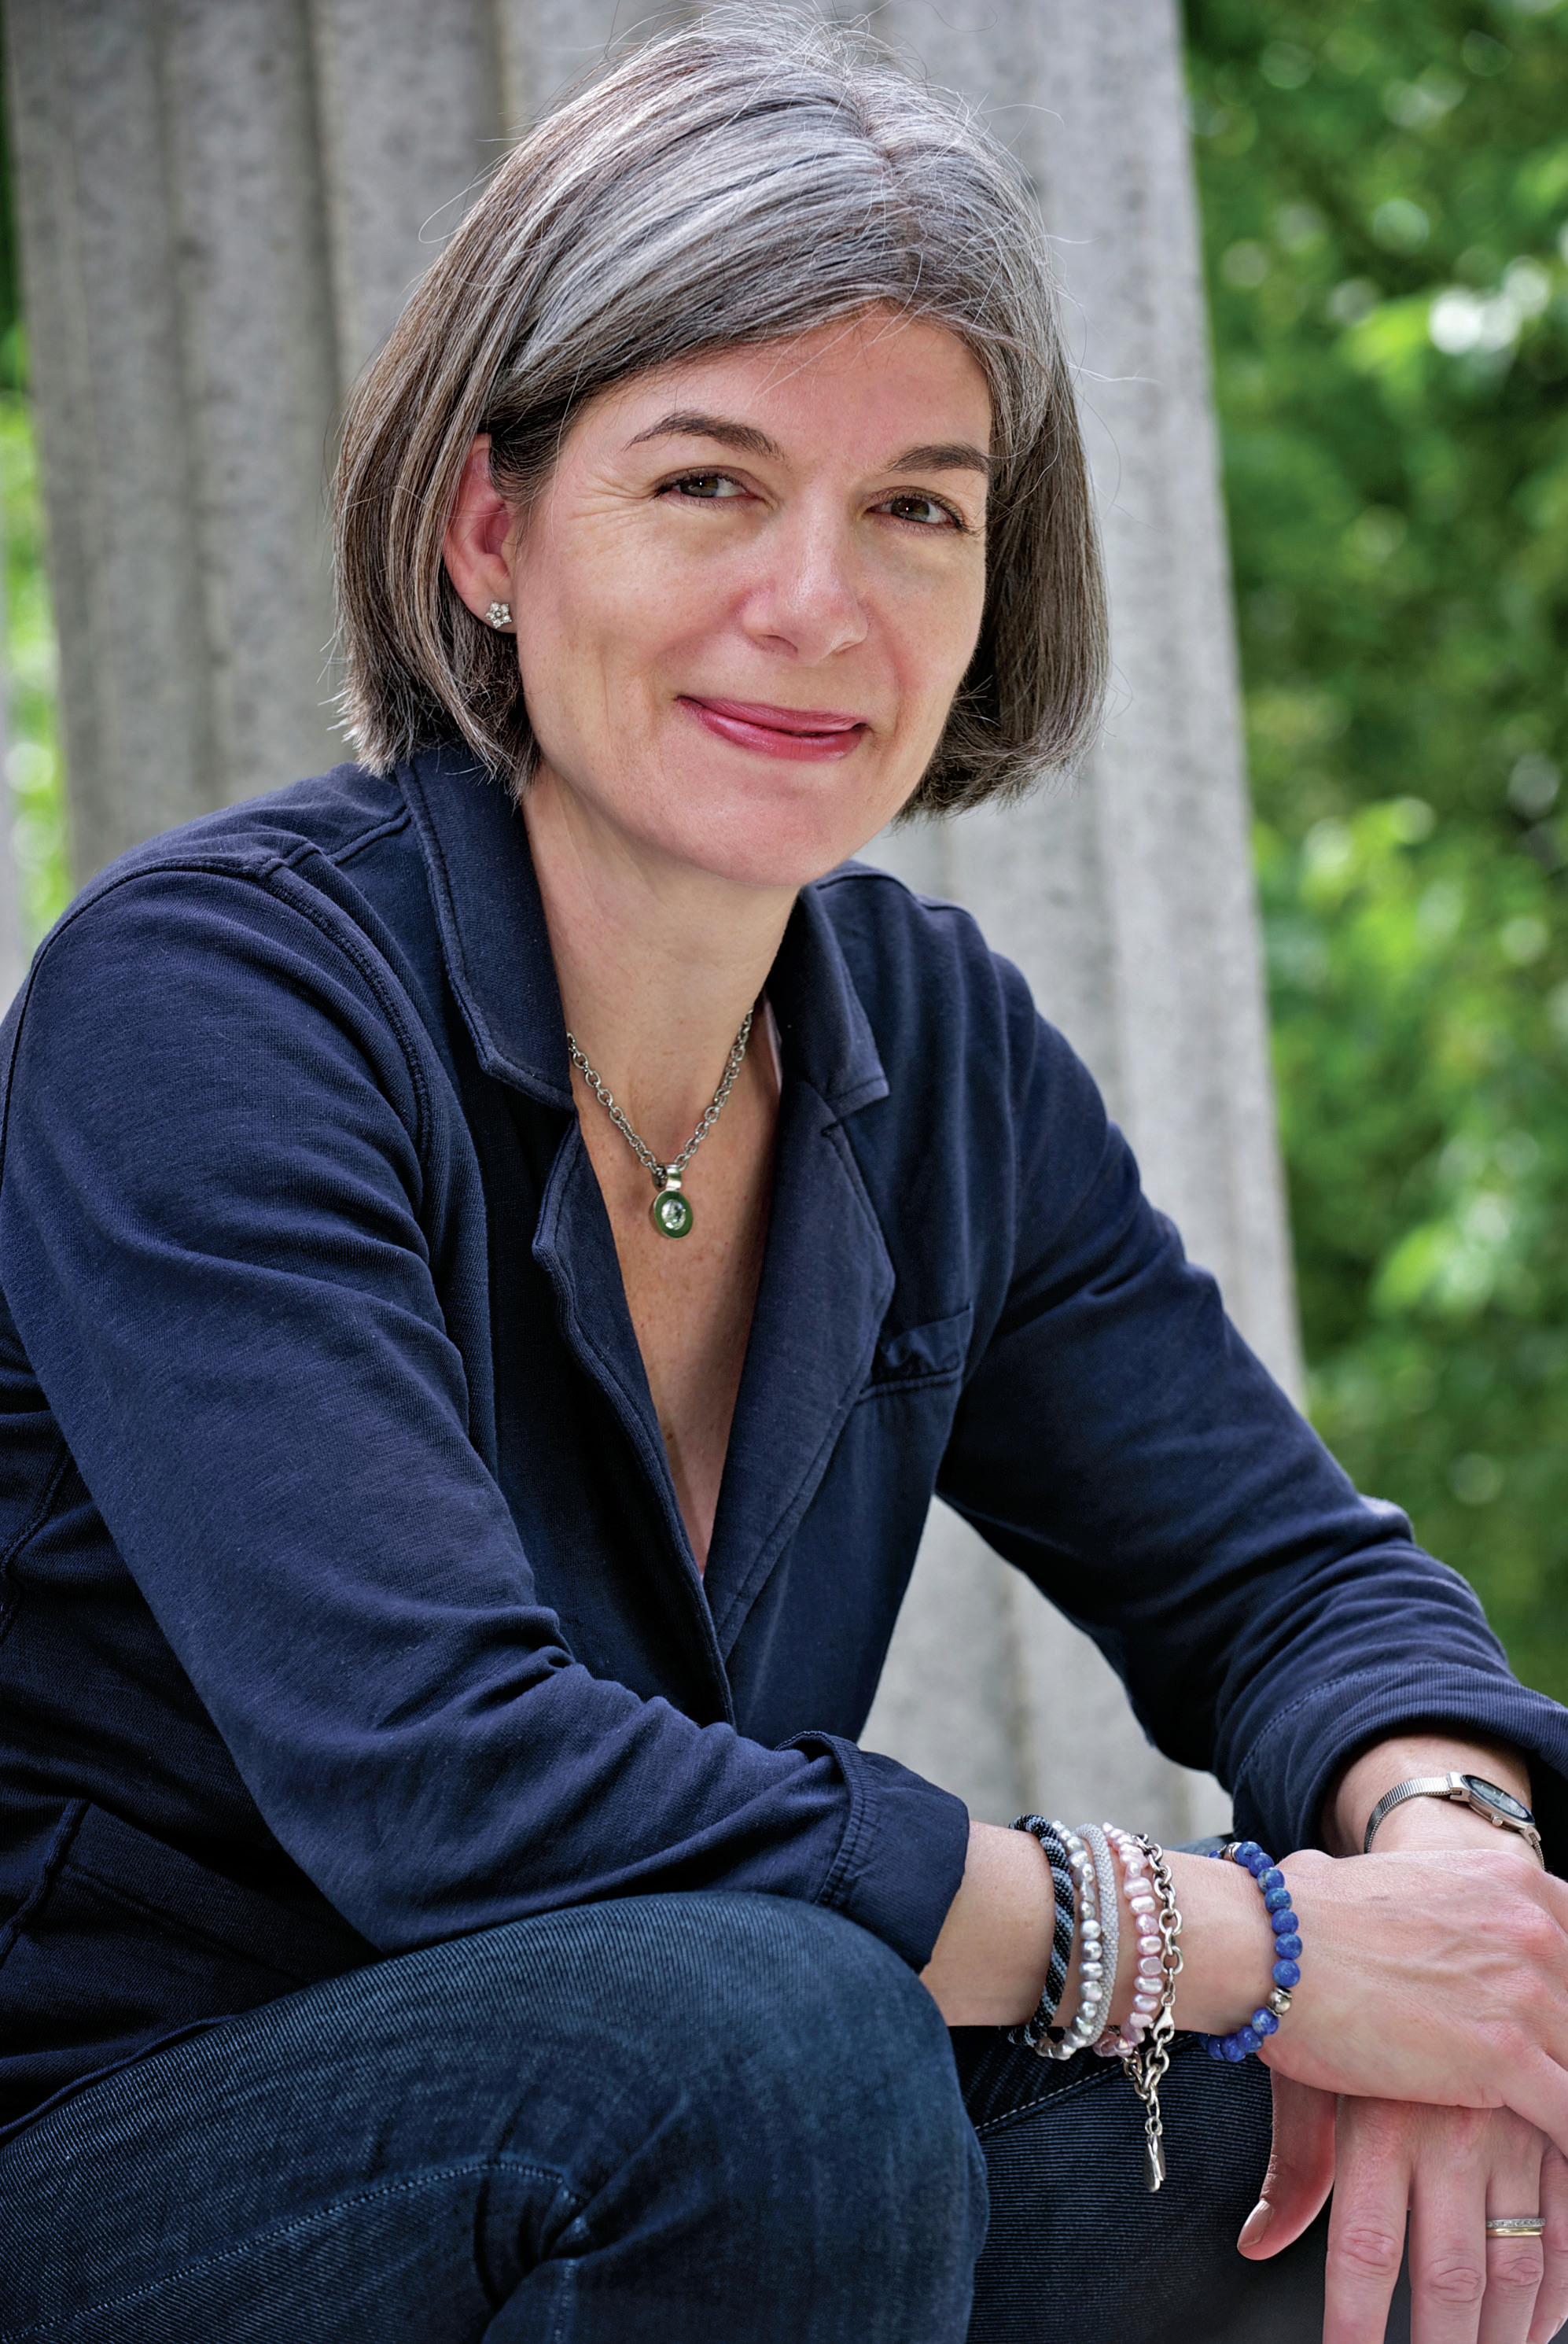 Claire Messud is an American author. Her 2006 novel The Emperor's Children was longlisted for the Man Booker prize.